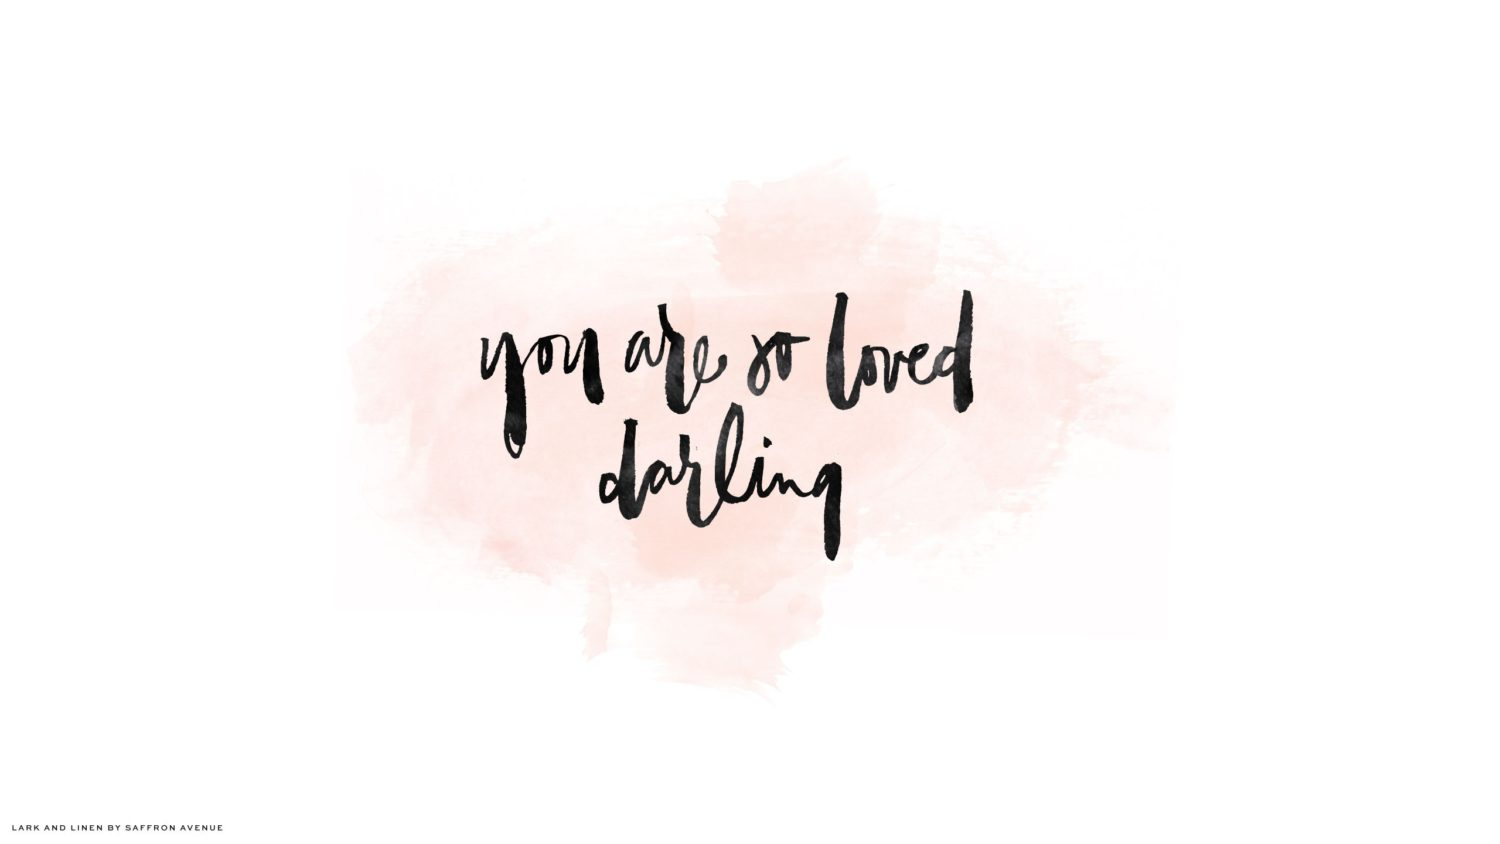 Love Quotes Wallpapers For Pc Free Download You Are So Loved Darling Lark Amp Linen